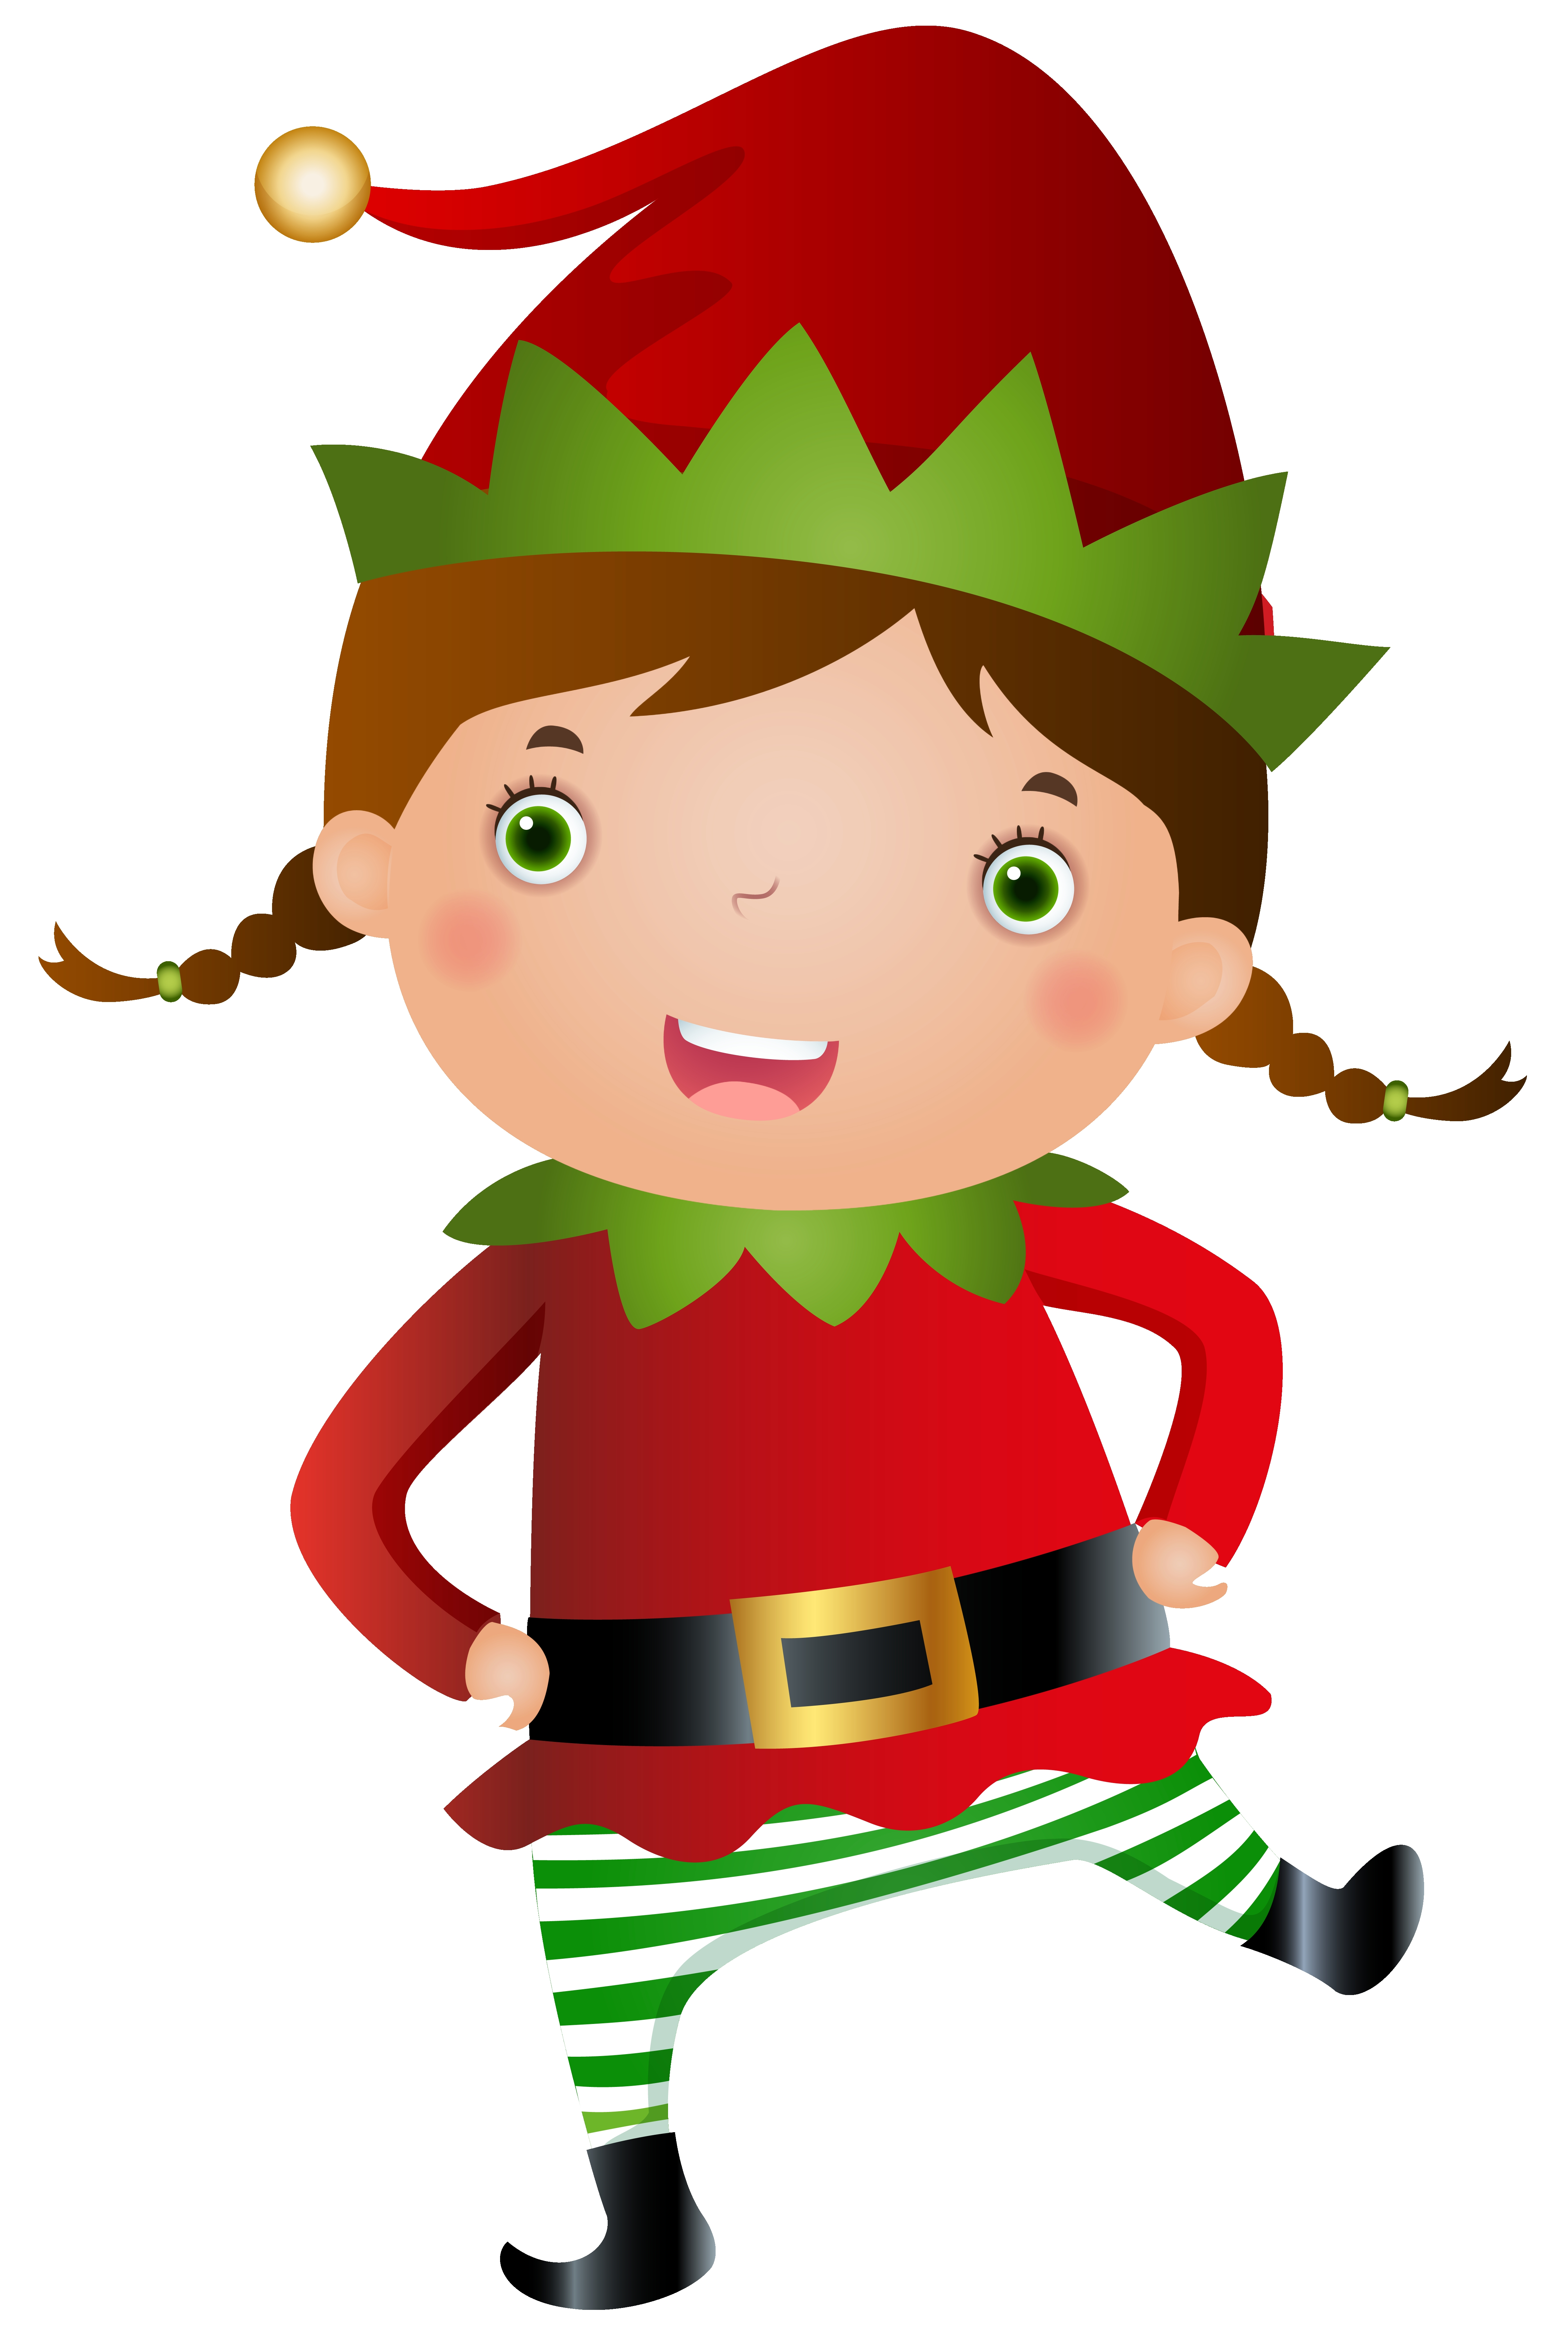 Elf clipart. Awesome elves design digital